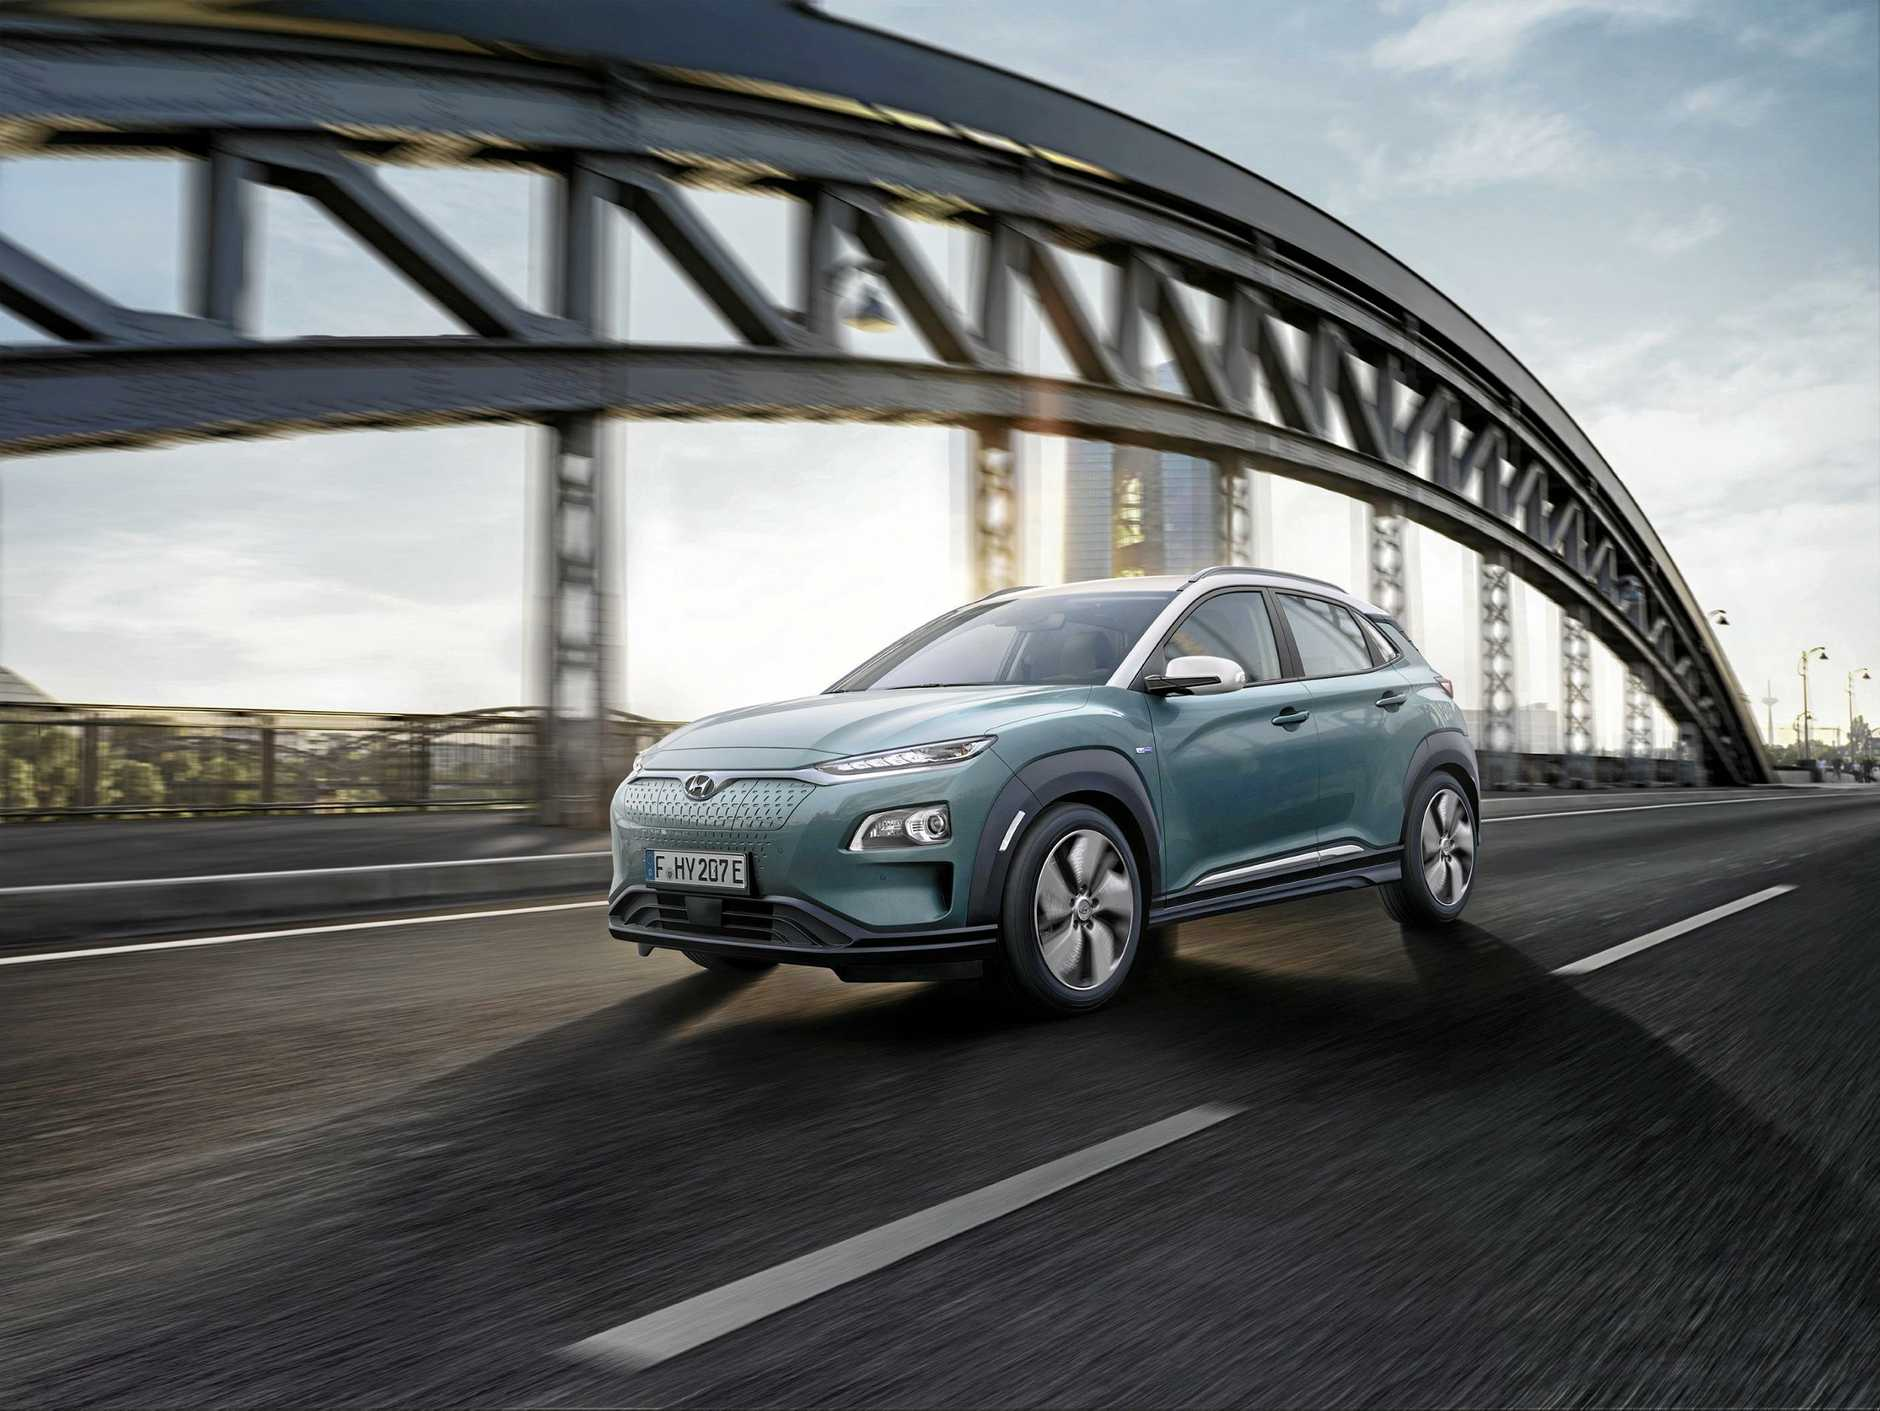 The Hyundai Kona Electric will launch in March.